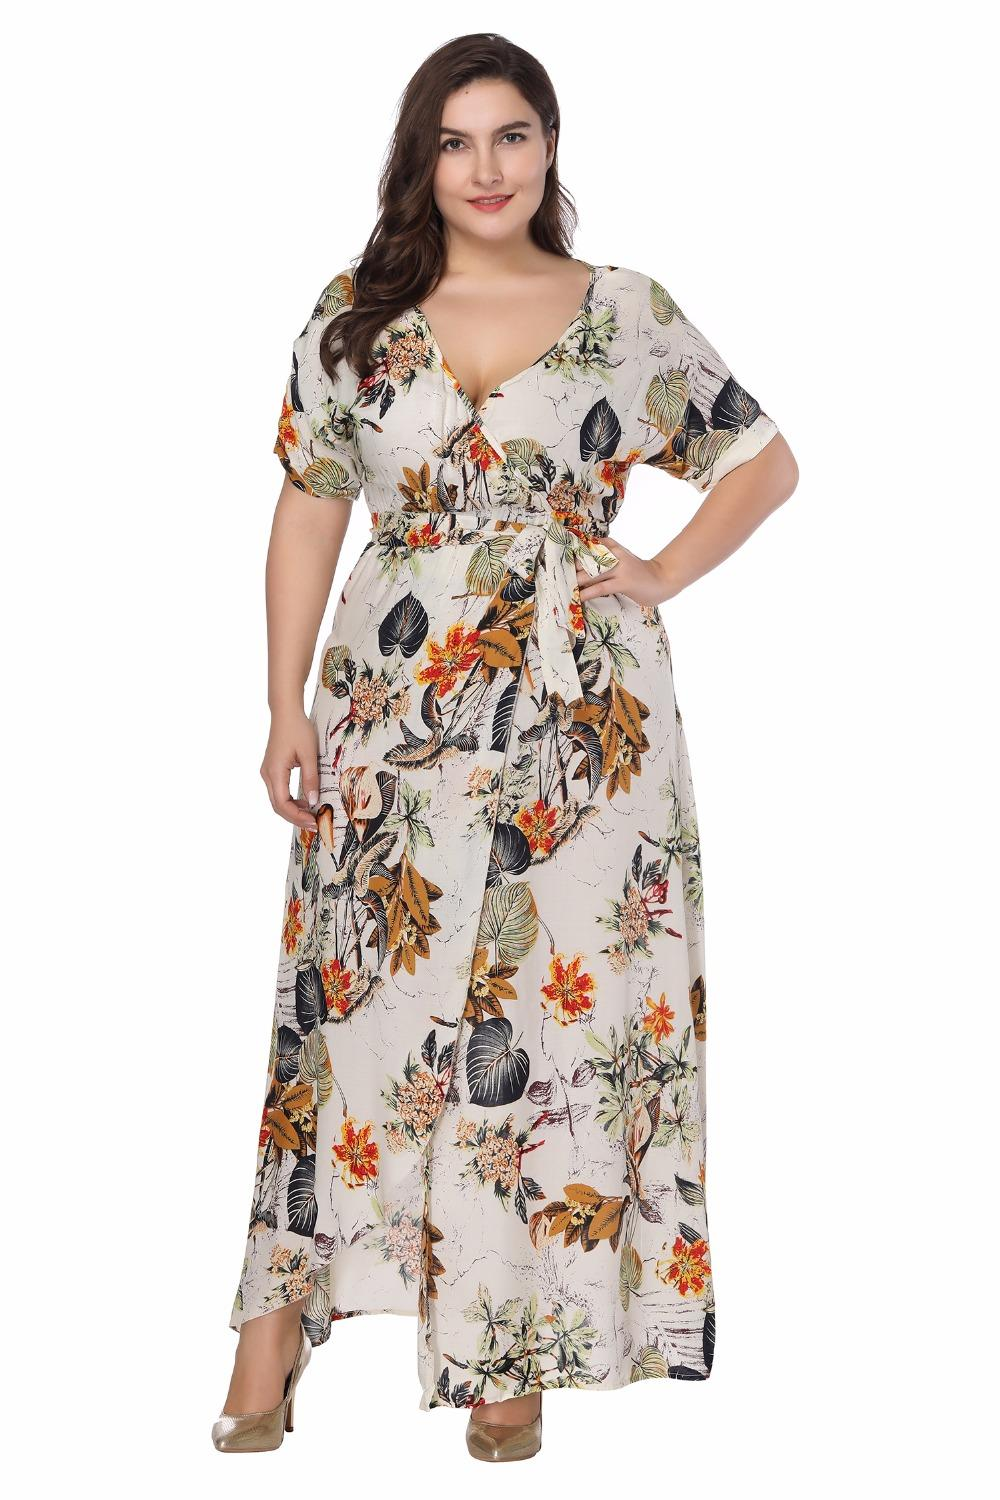 2019 2018 Summer Maxi Dress Plus Size Women Clothing Floral Printed Women  Dress Big Size Long Party Female Vestidos From Qingxin13, $34.08 | ...